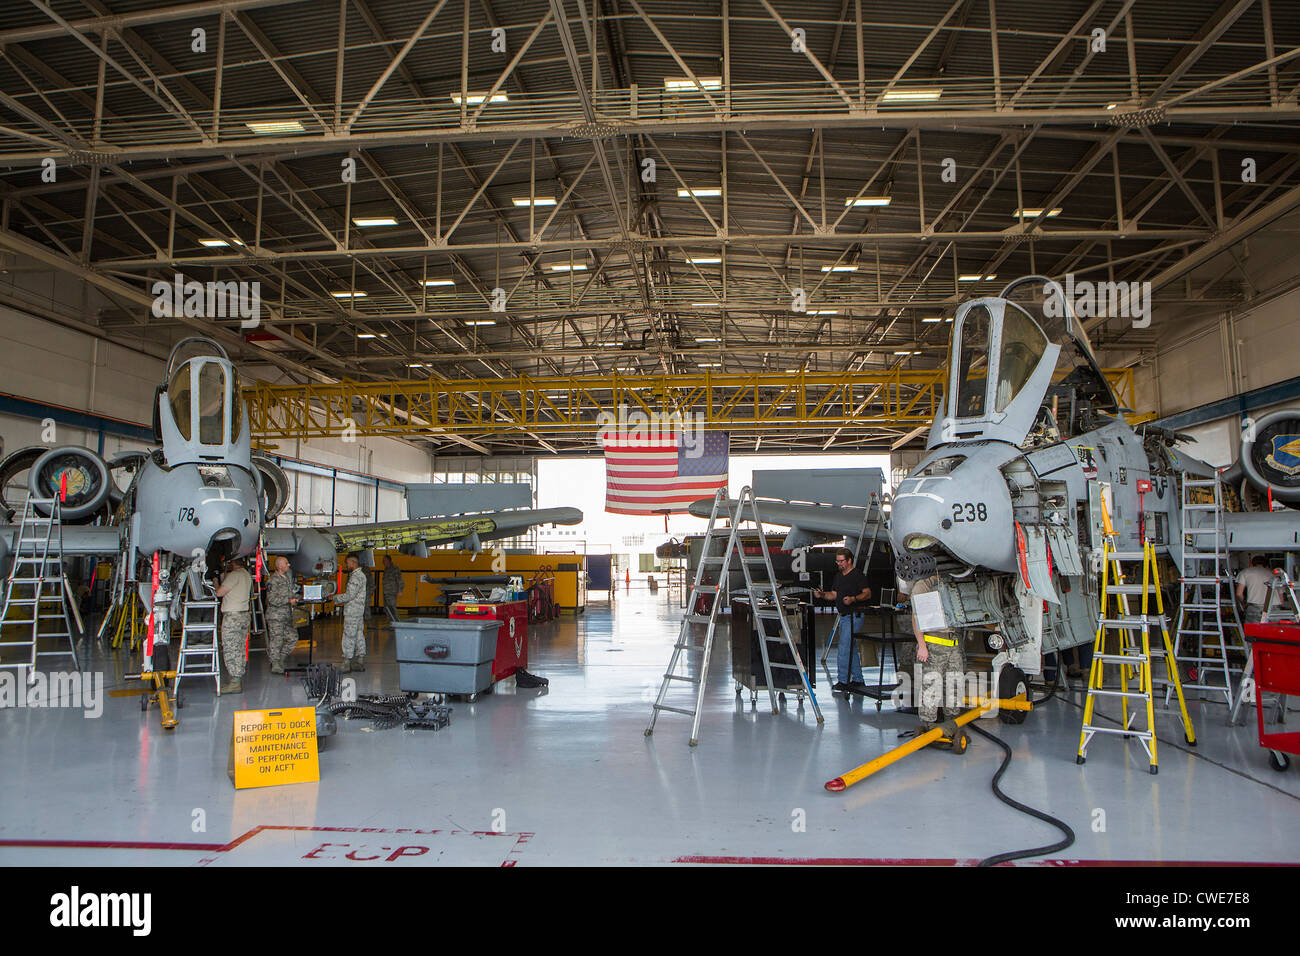 Airmen perform maintenance work on an A-10 Thunderbolt from the 354th Fighter Squadron at Davis-Monthan Air Force - Stock Image